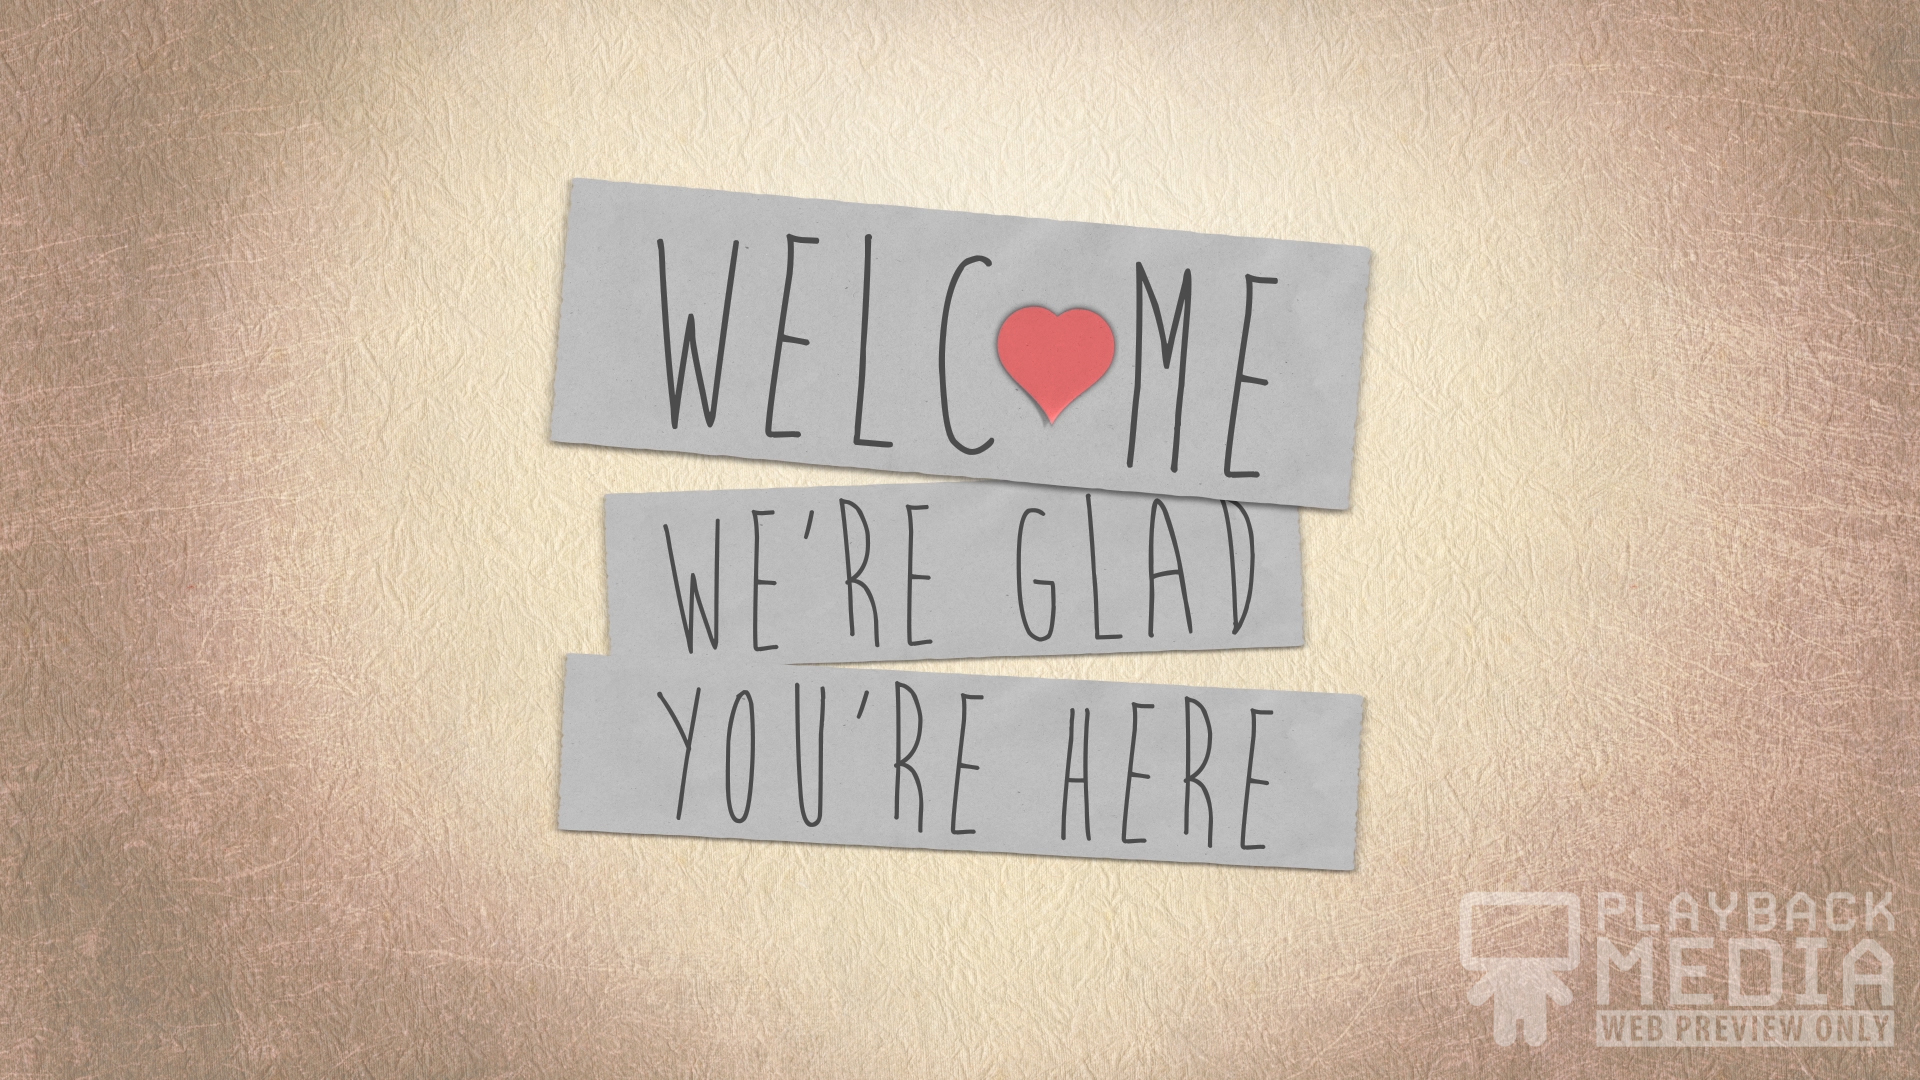 Made With Love Welcome Motion Image